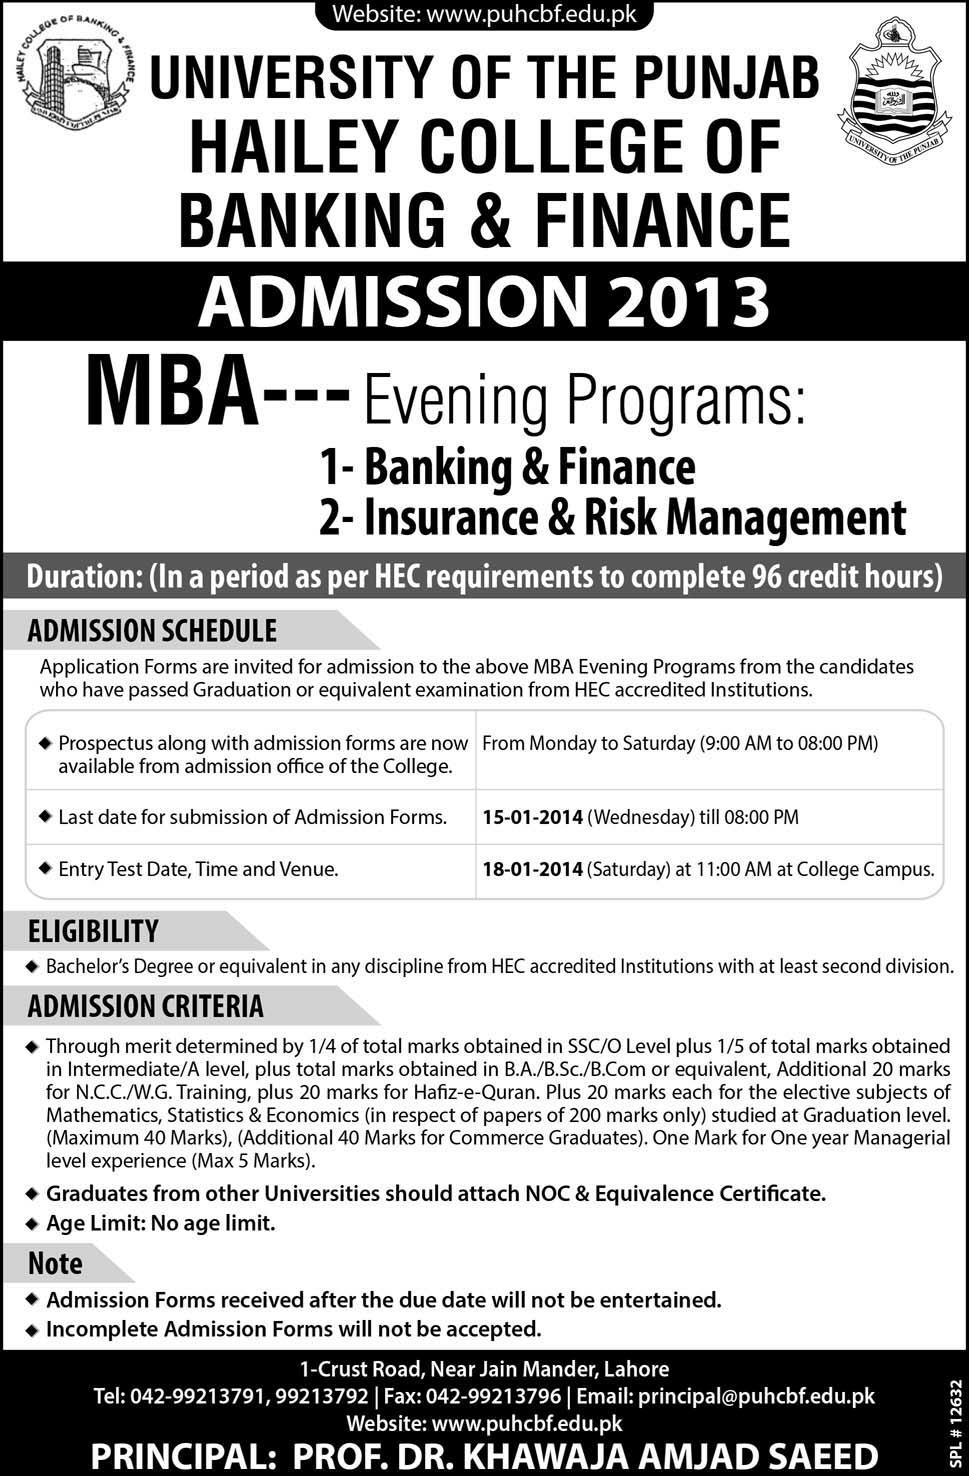 Punjab university Hailey College MBA evening Admission 2014